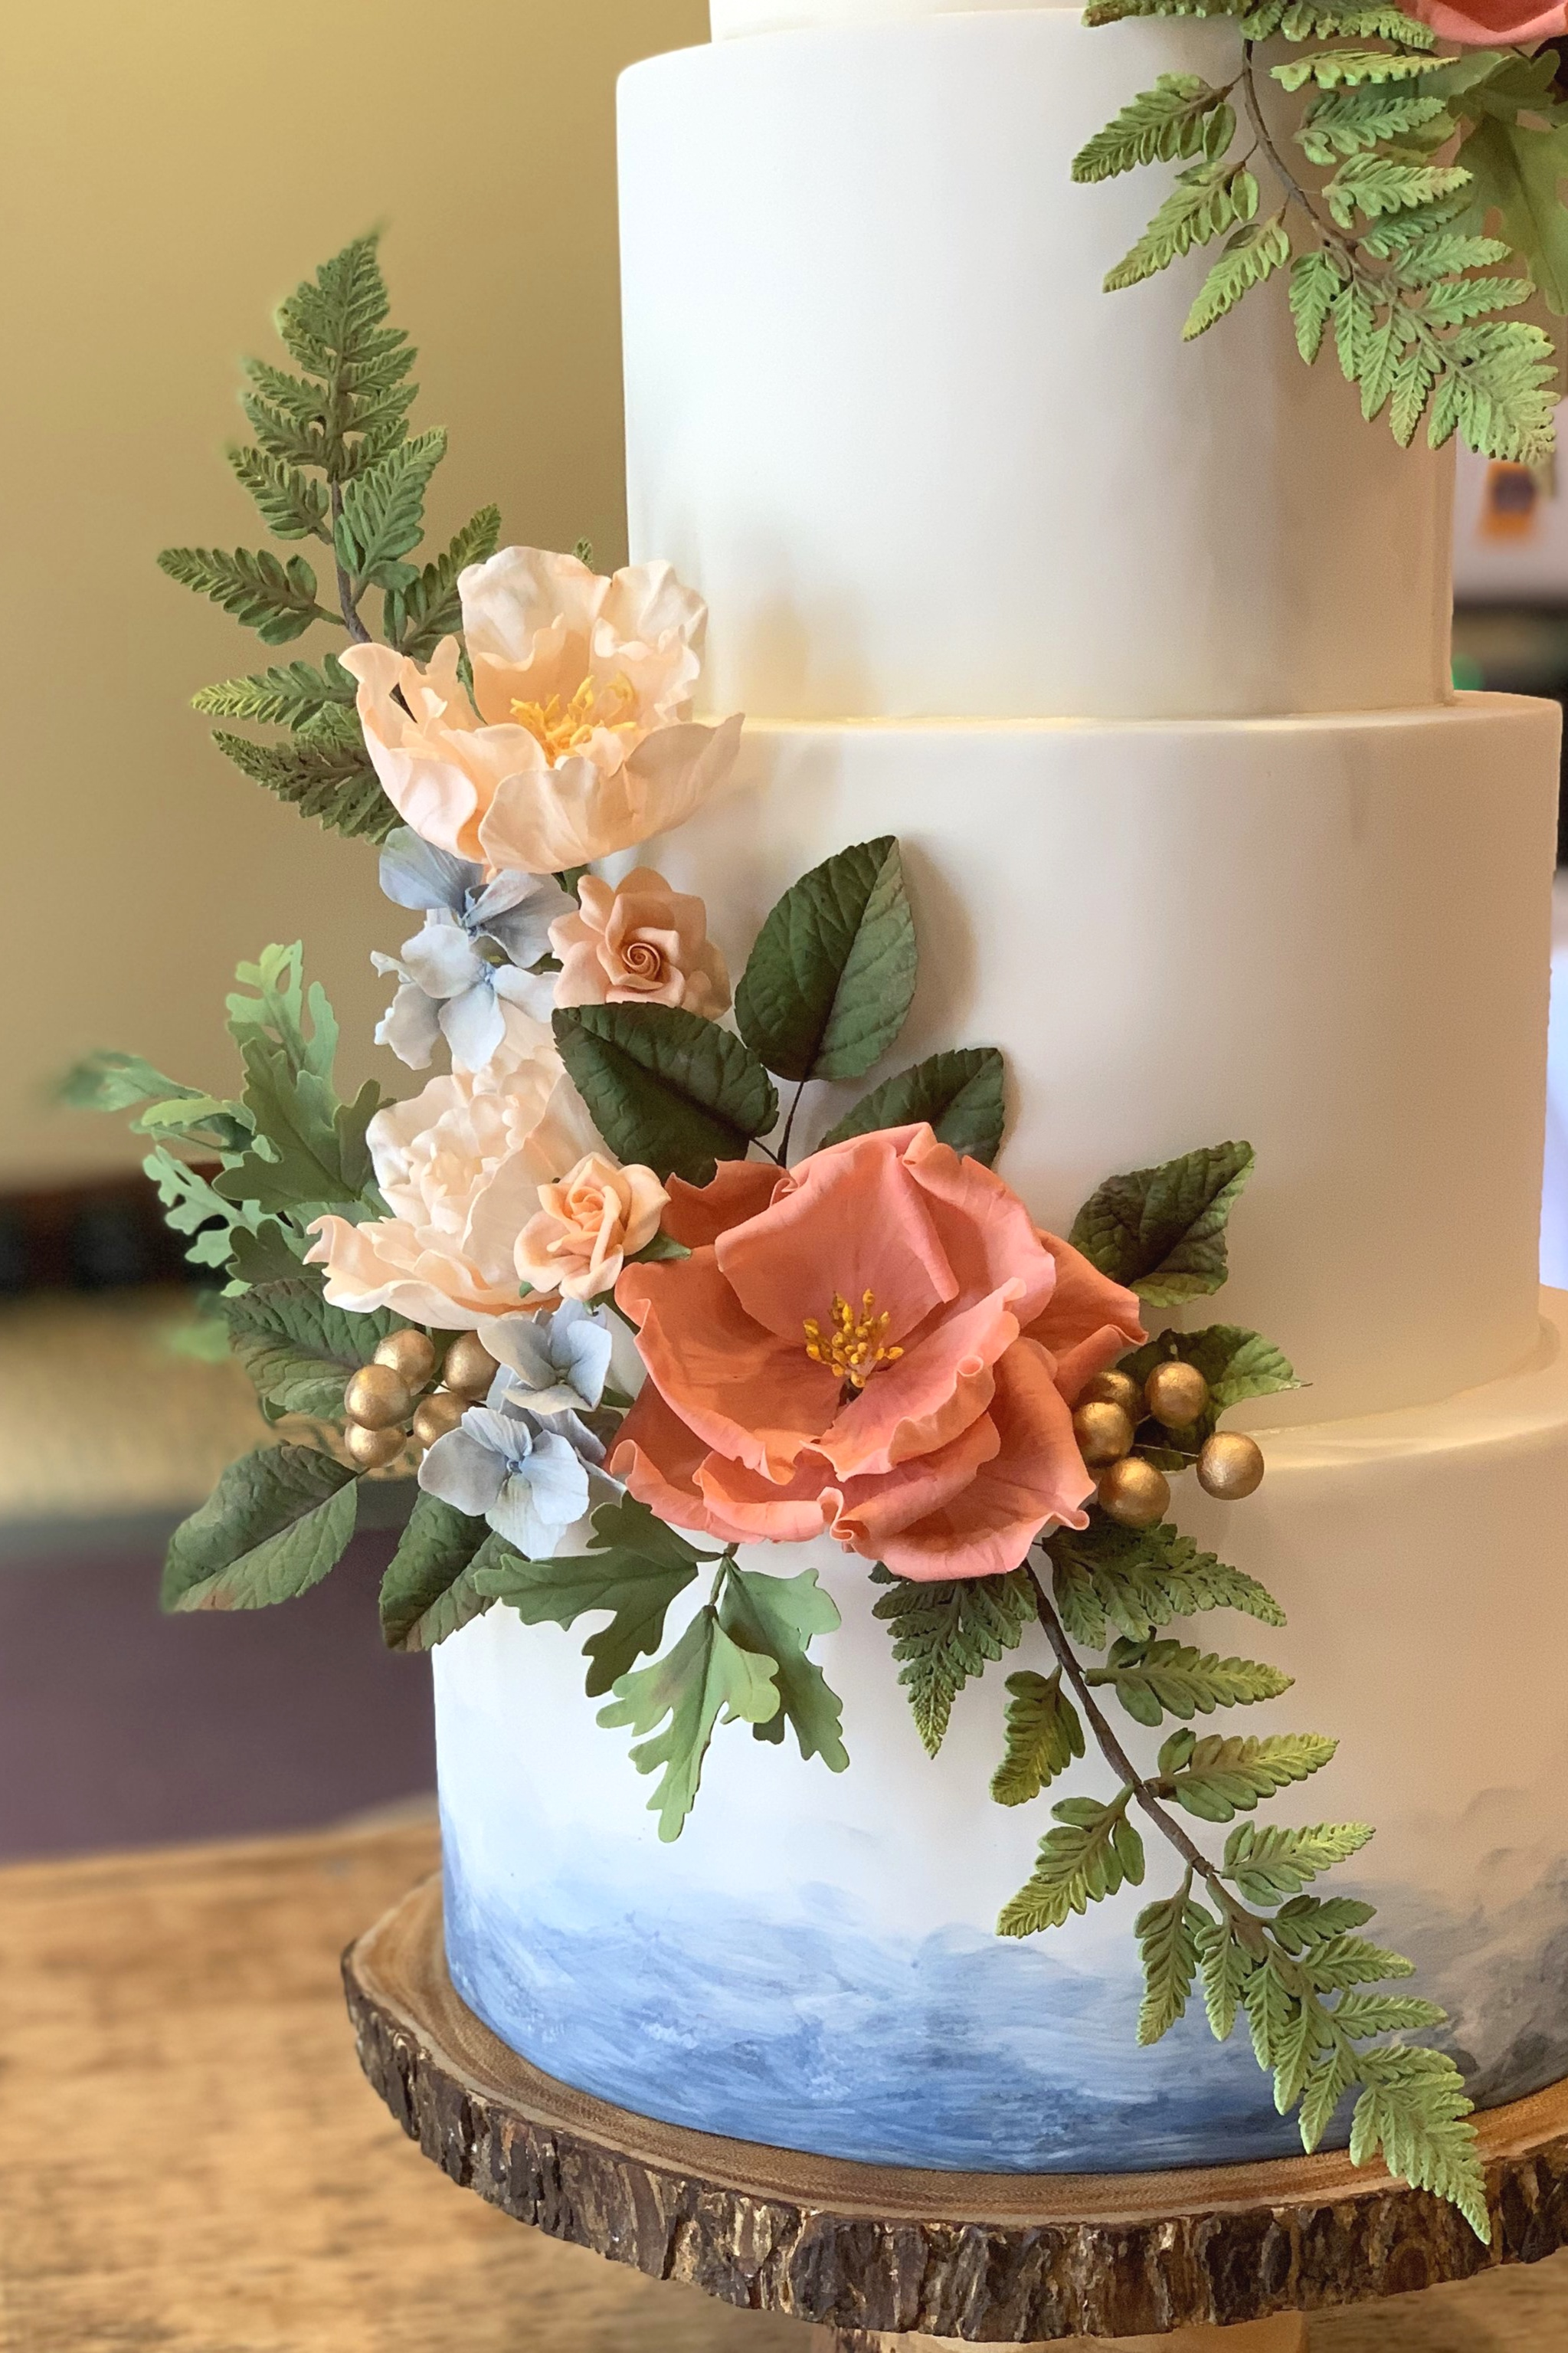 Sugar ferns, climbing roses, roselings, hydrangeas, gold berries, and foliage on a hand painted watercolor cake. Image copyright Carla Schier.